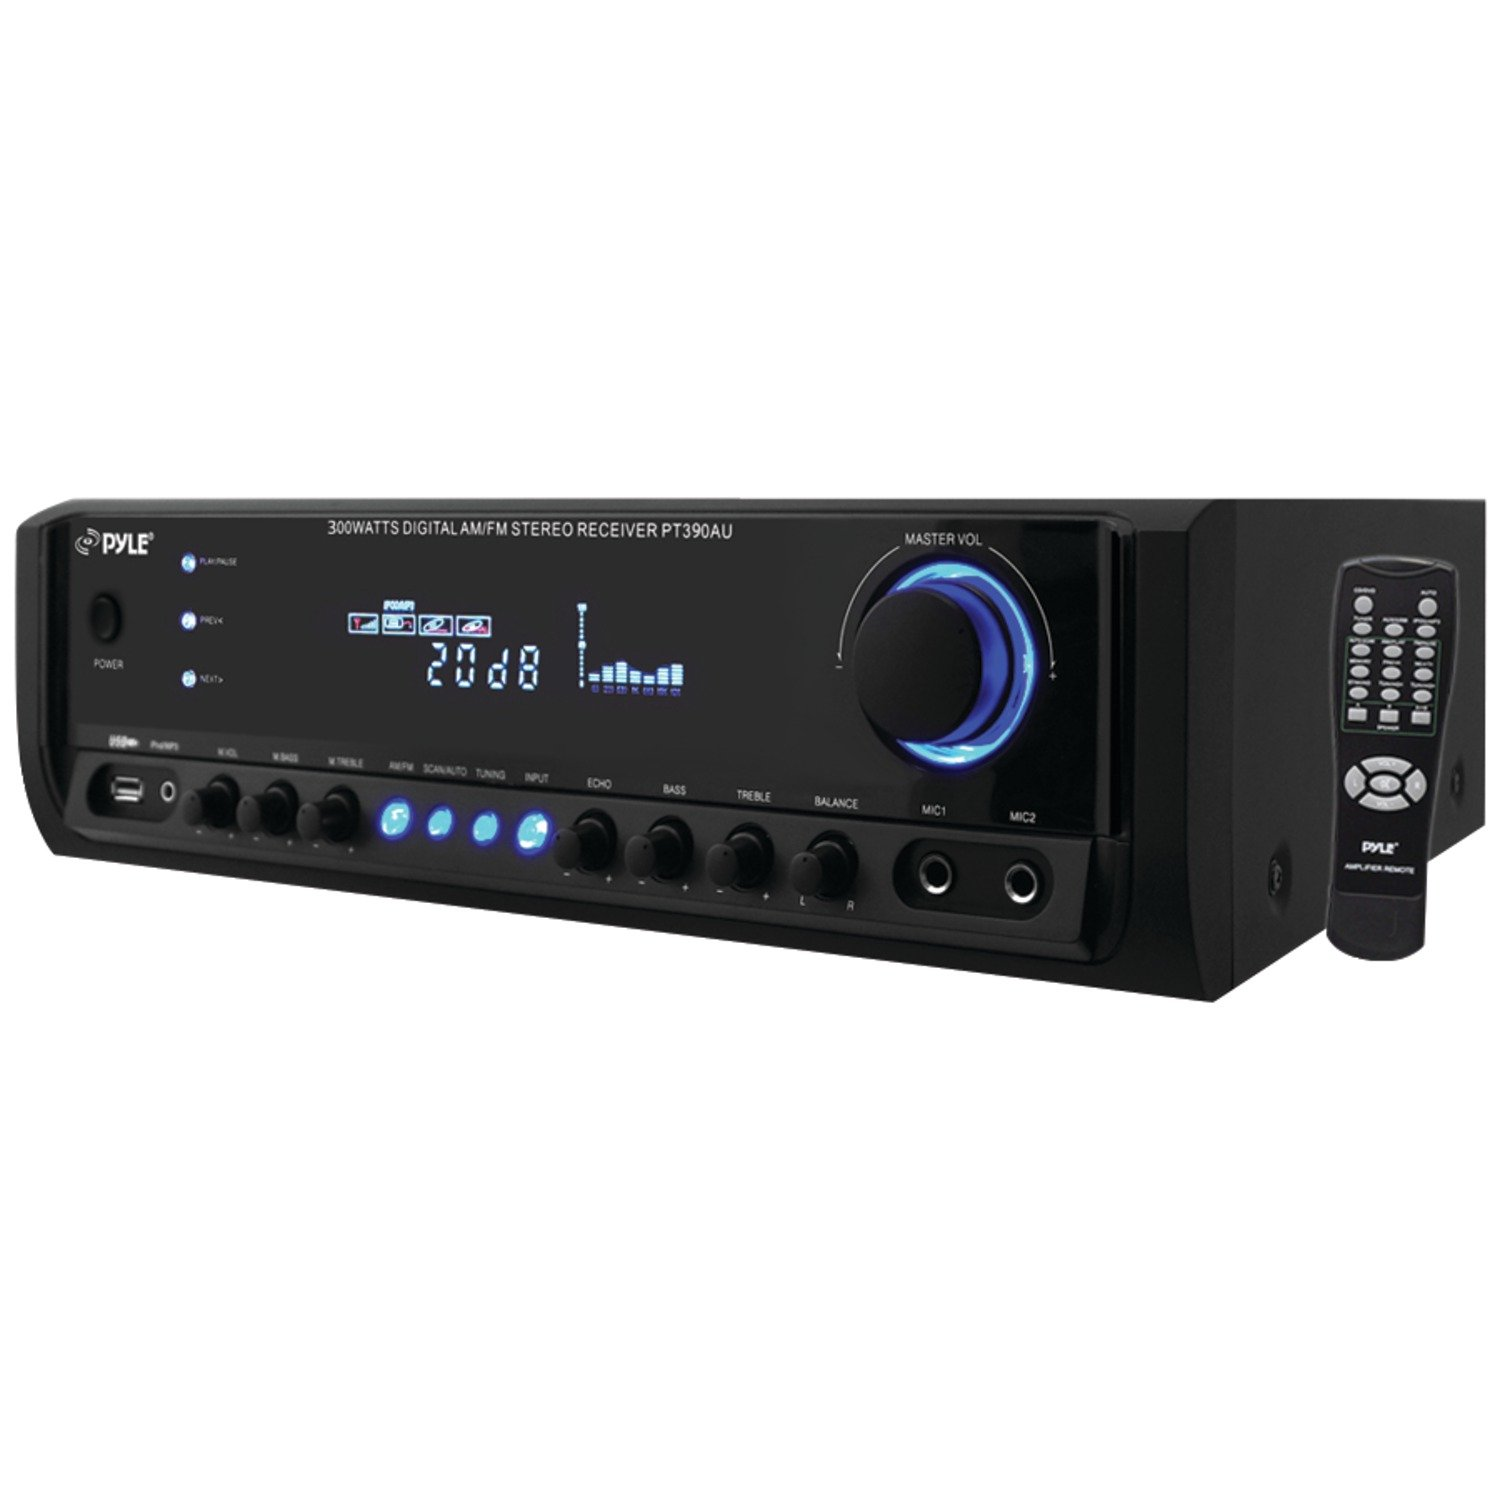 Pyle PT390AU Digital Home Theater Stereo Receiver, Aux (3.5mm) Input, MP3/USB/AM/FM Radio, (2) Mic Inputs, 300 Watt by Pyle